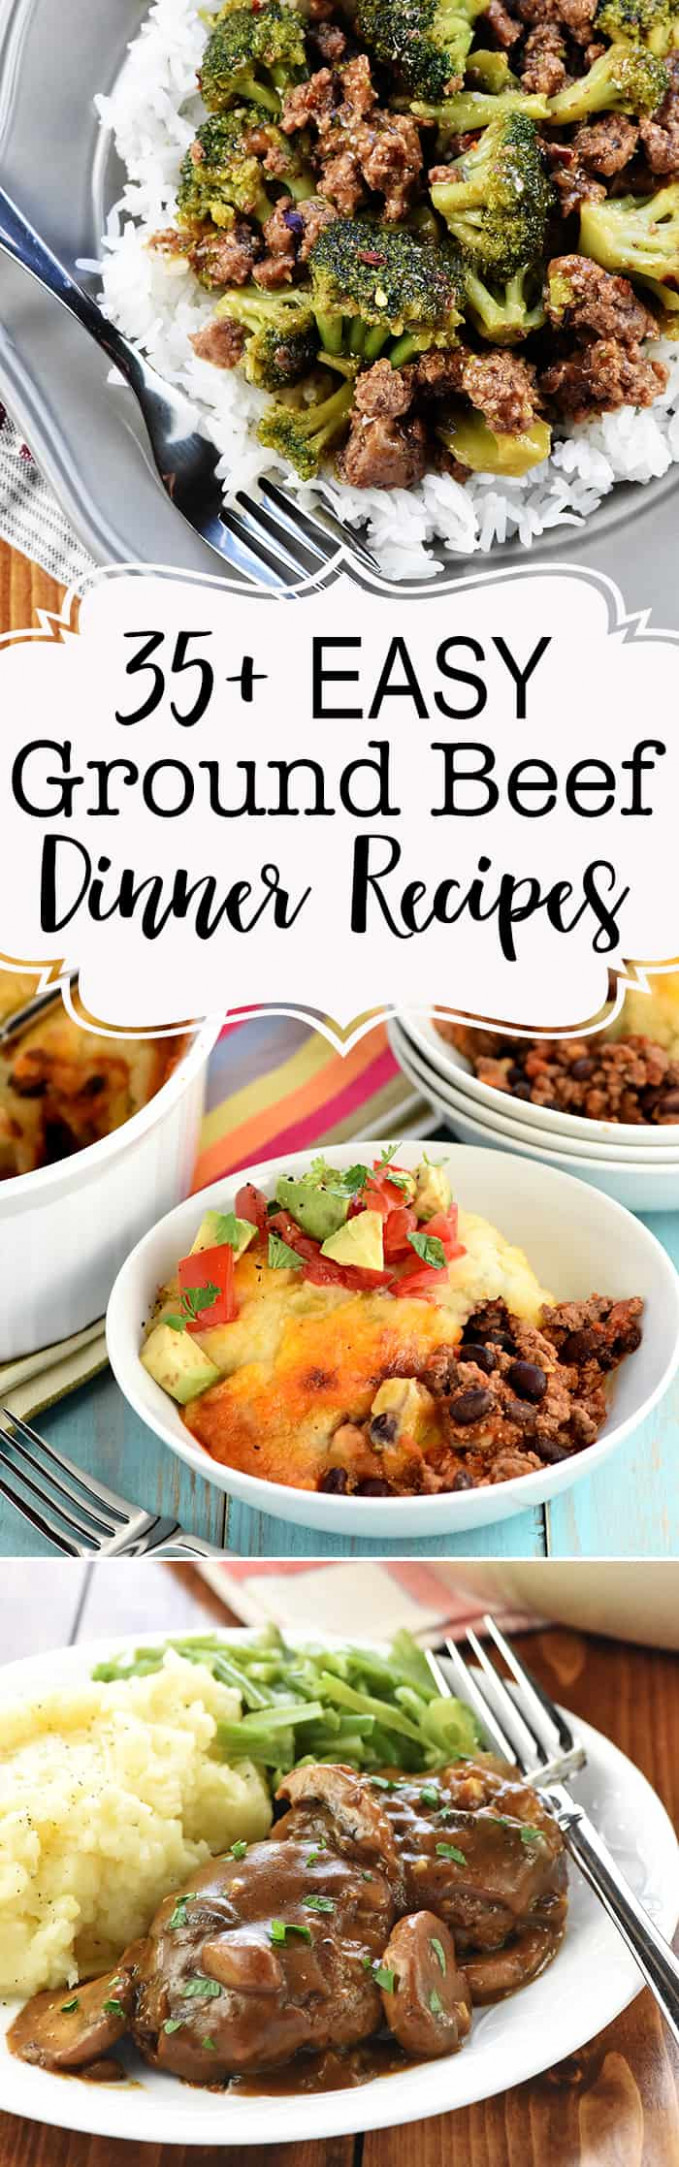 Favorite* QUICK & EASY Ground Beef Dinner Recipes ..